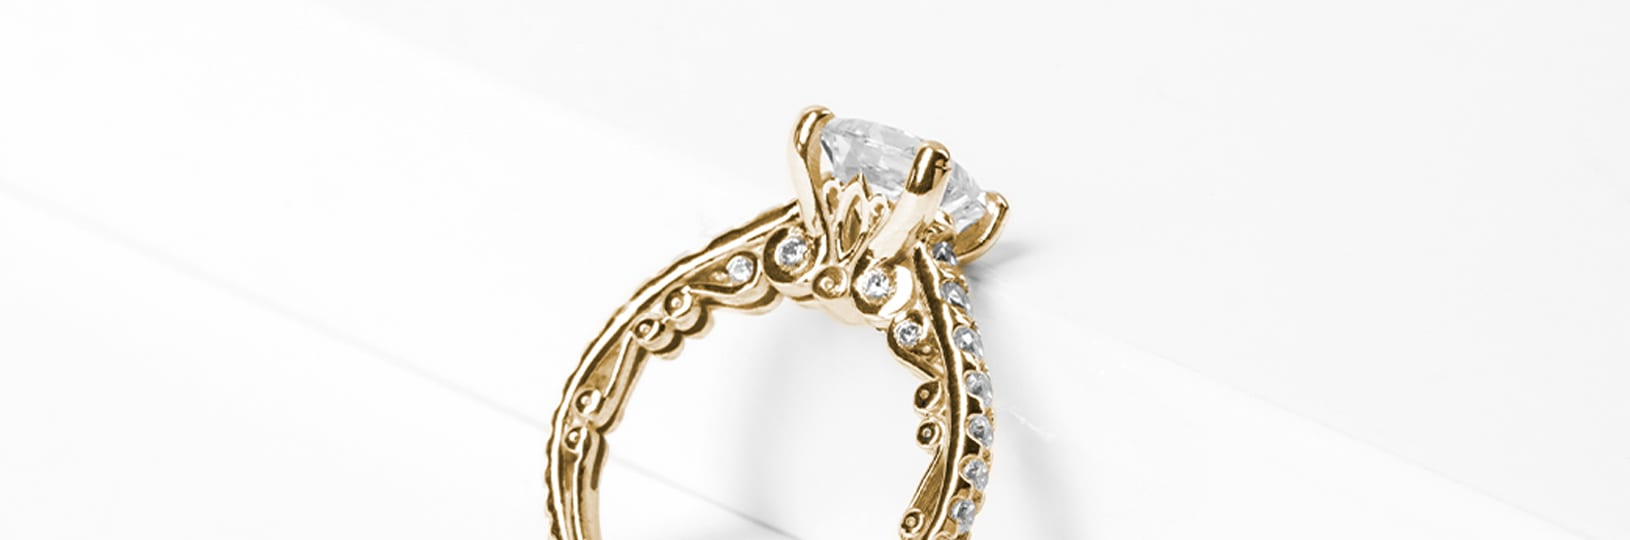 A yellow gold engagement ring with filigree